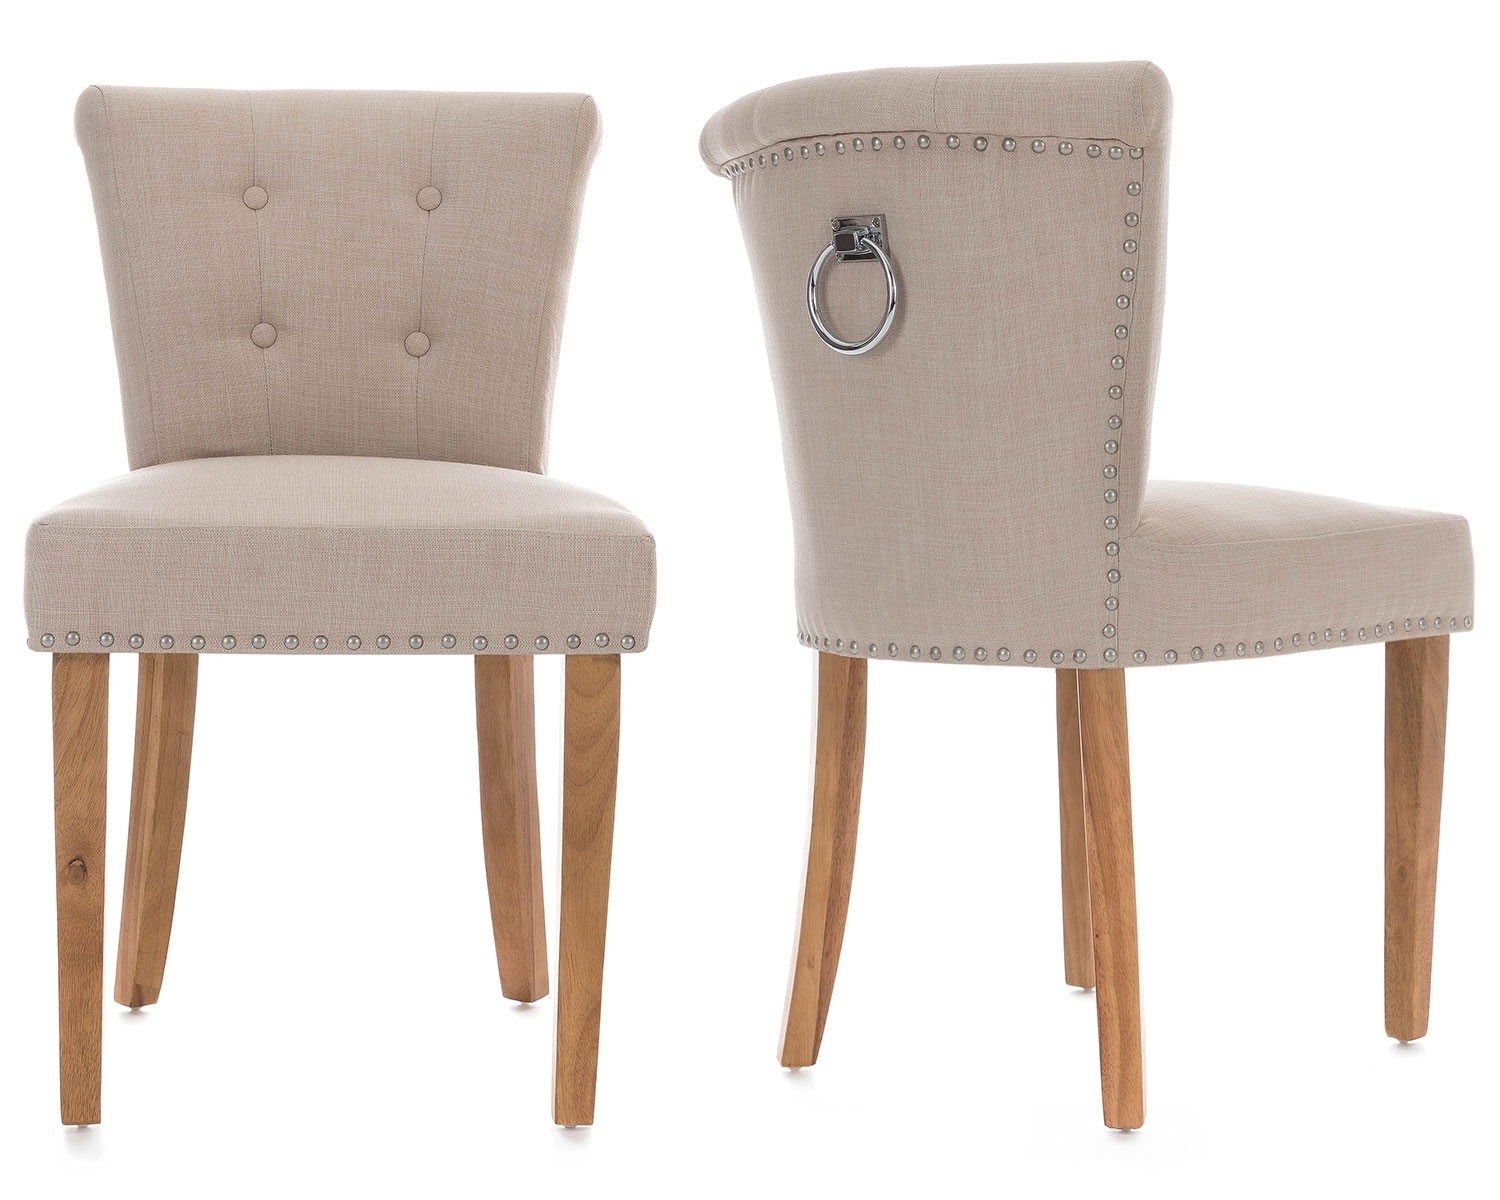 2019 Pair Of Camden Dining Chairs In Cream Linen With Chrome Knocker And Regarding Camden Dining Chairs (#3 of 20)